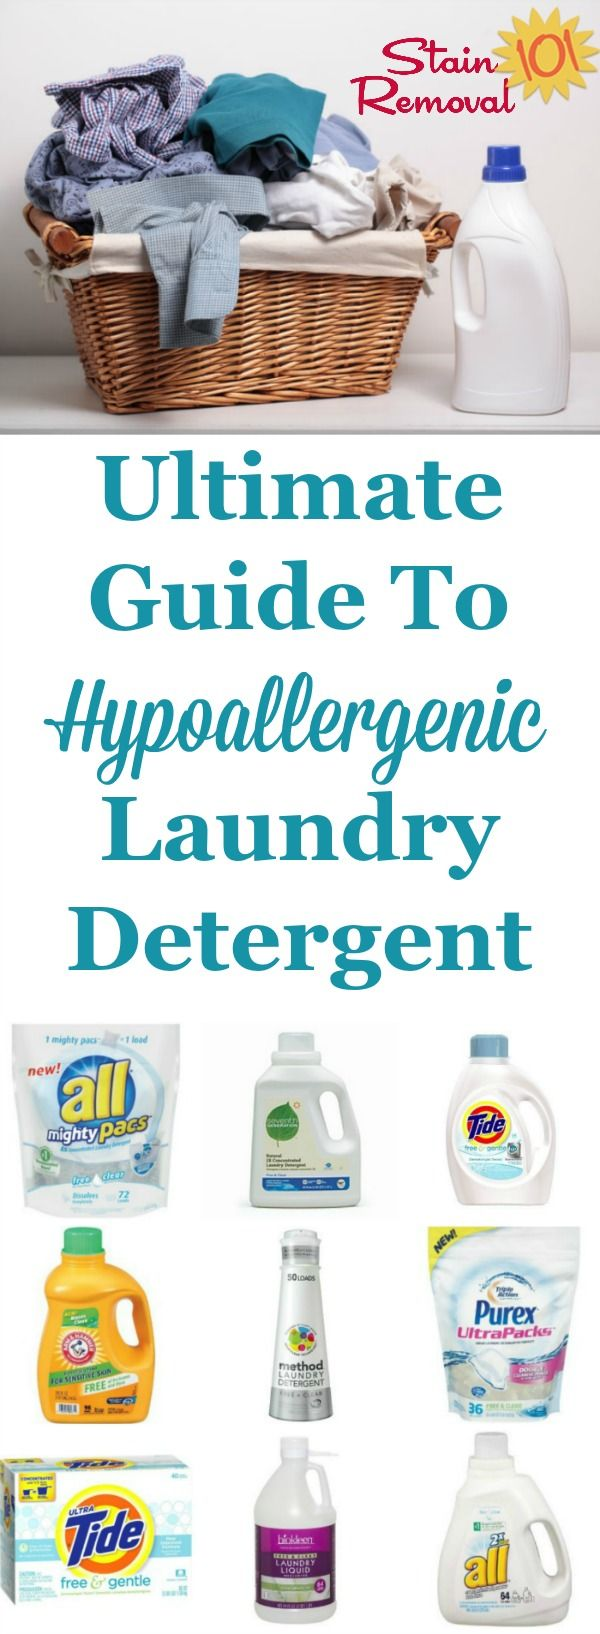 Ultimate Guide To Hypoallergenic Laundry Detergent Use It To